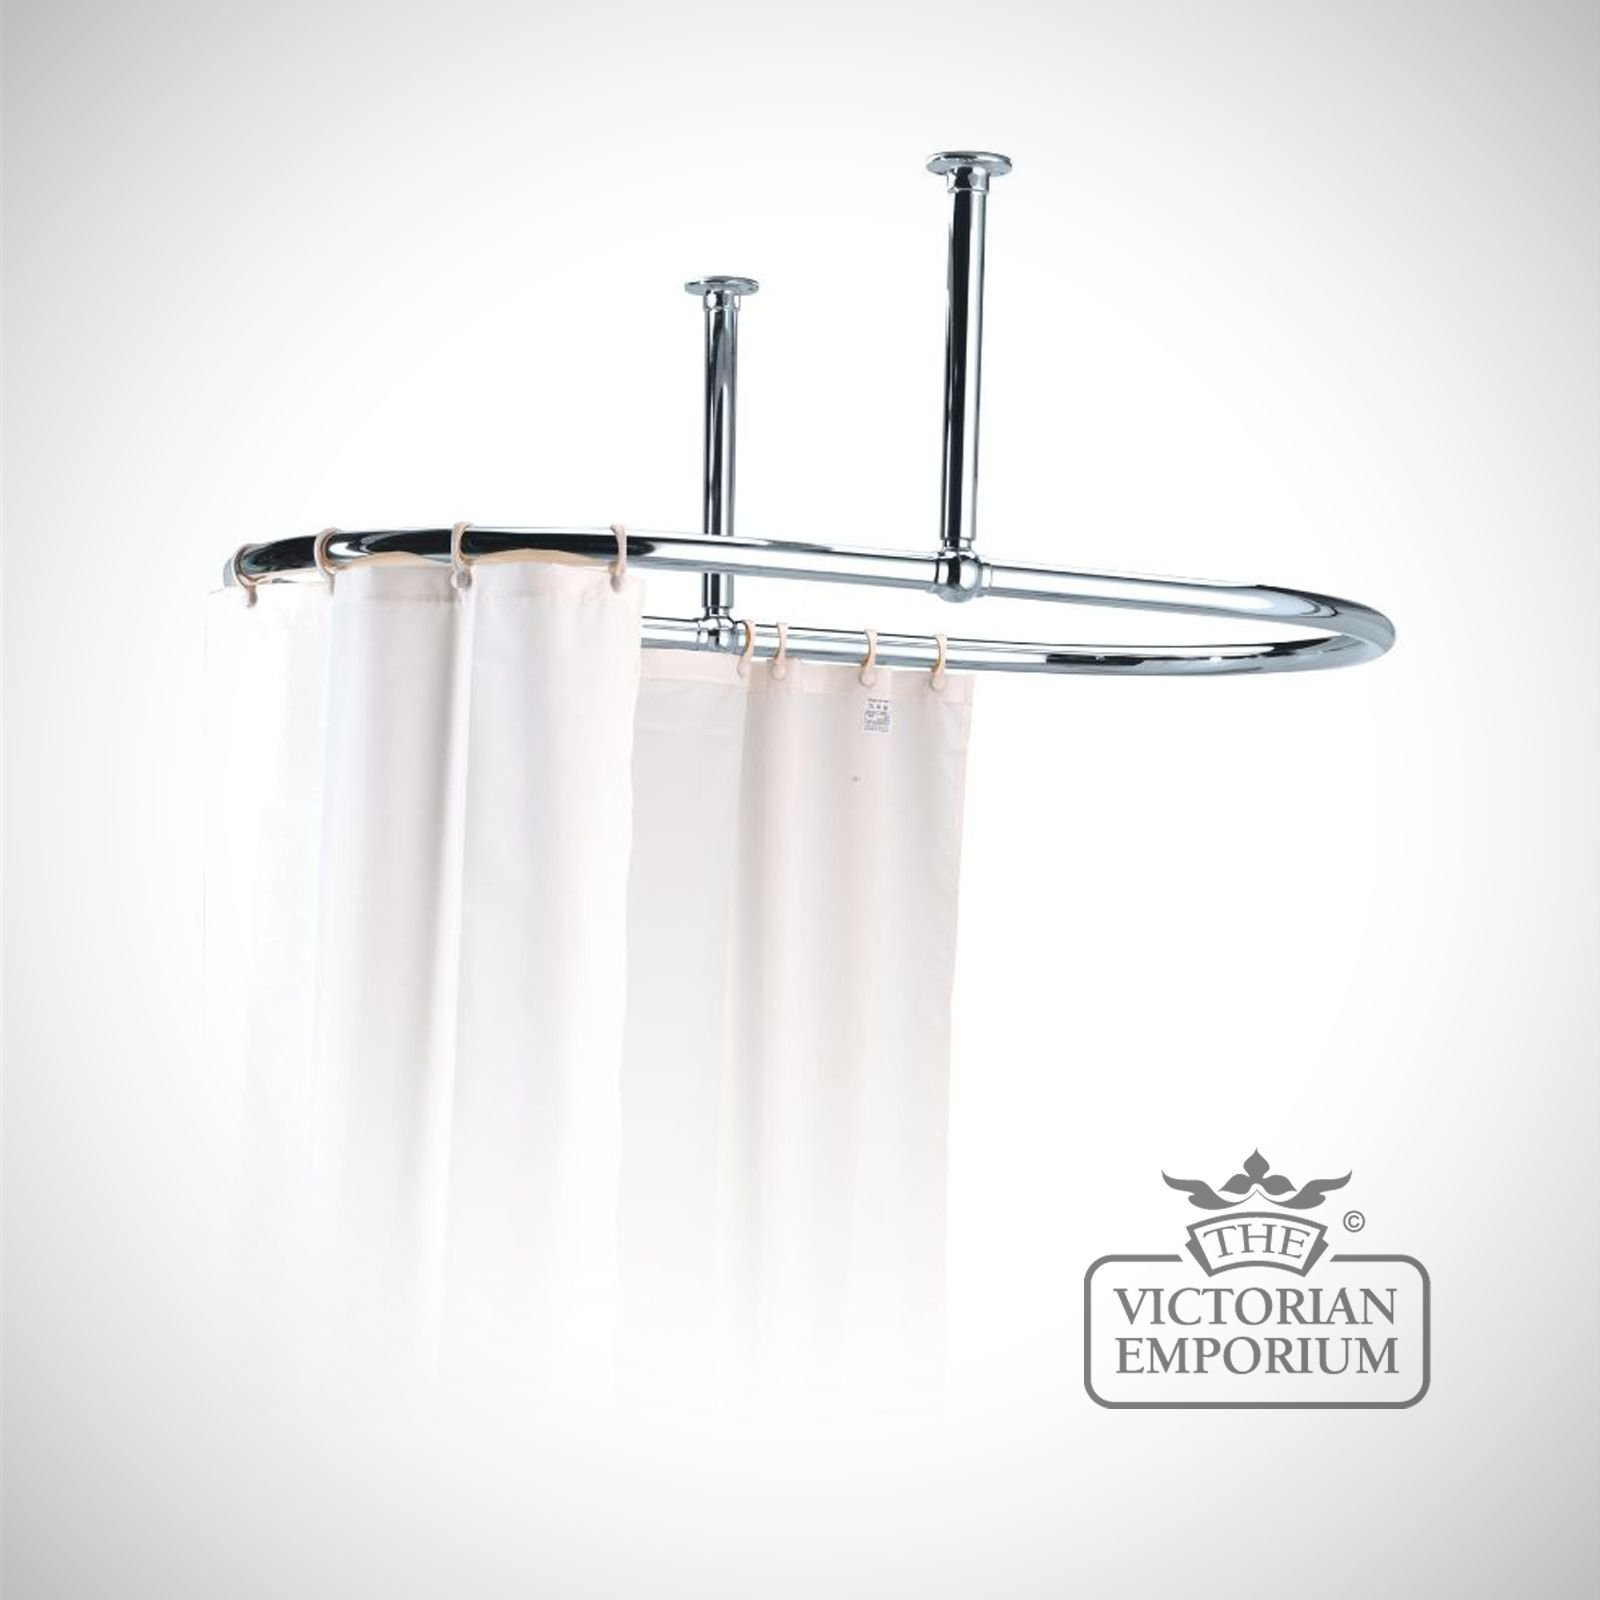 Oval Shower Curtain Rail Chrome with Side stays | Bathroom Accessories